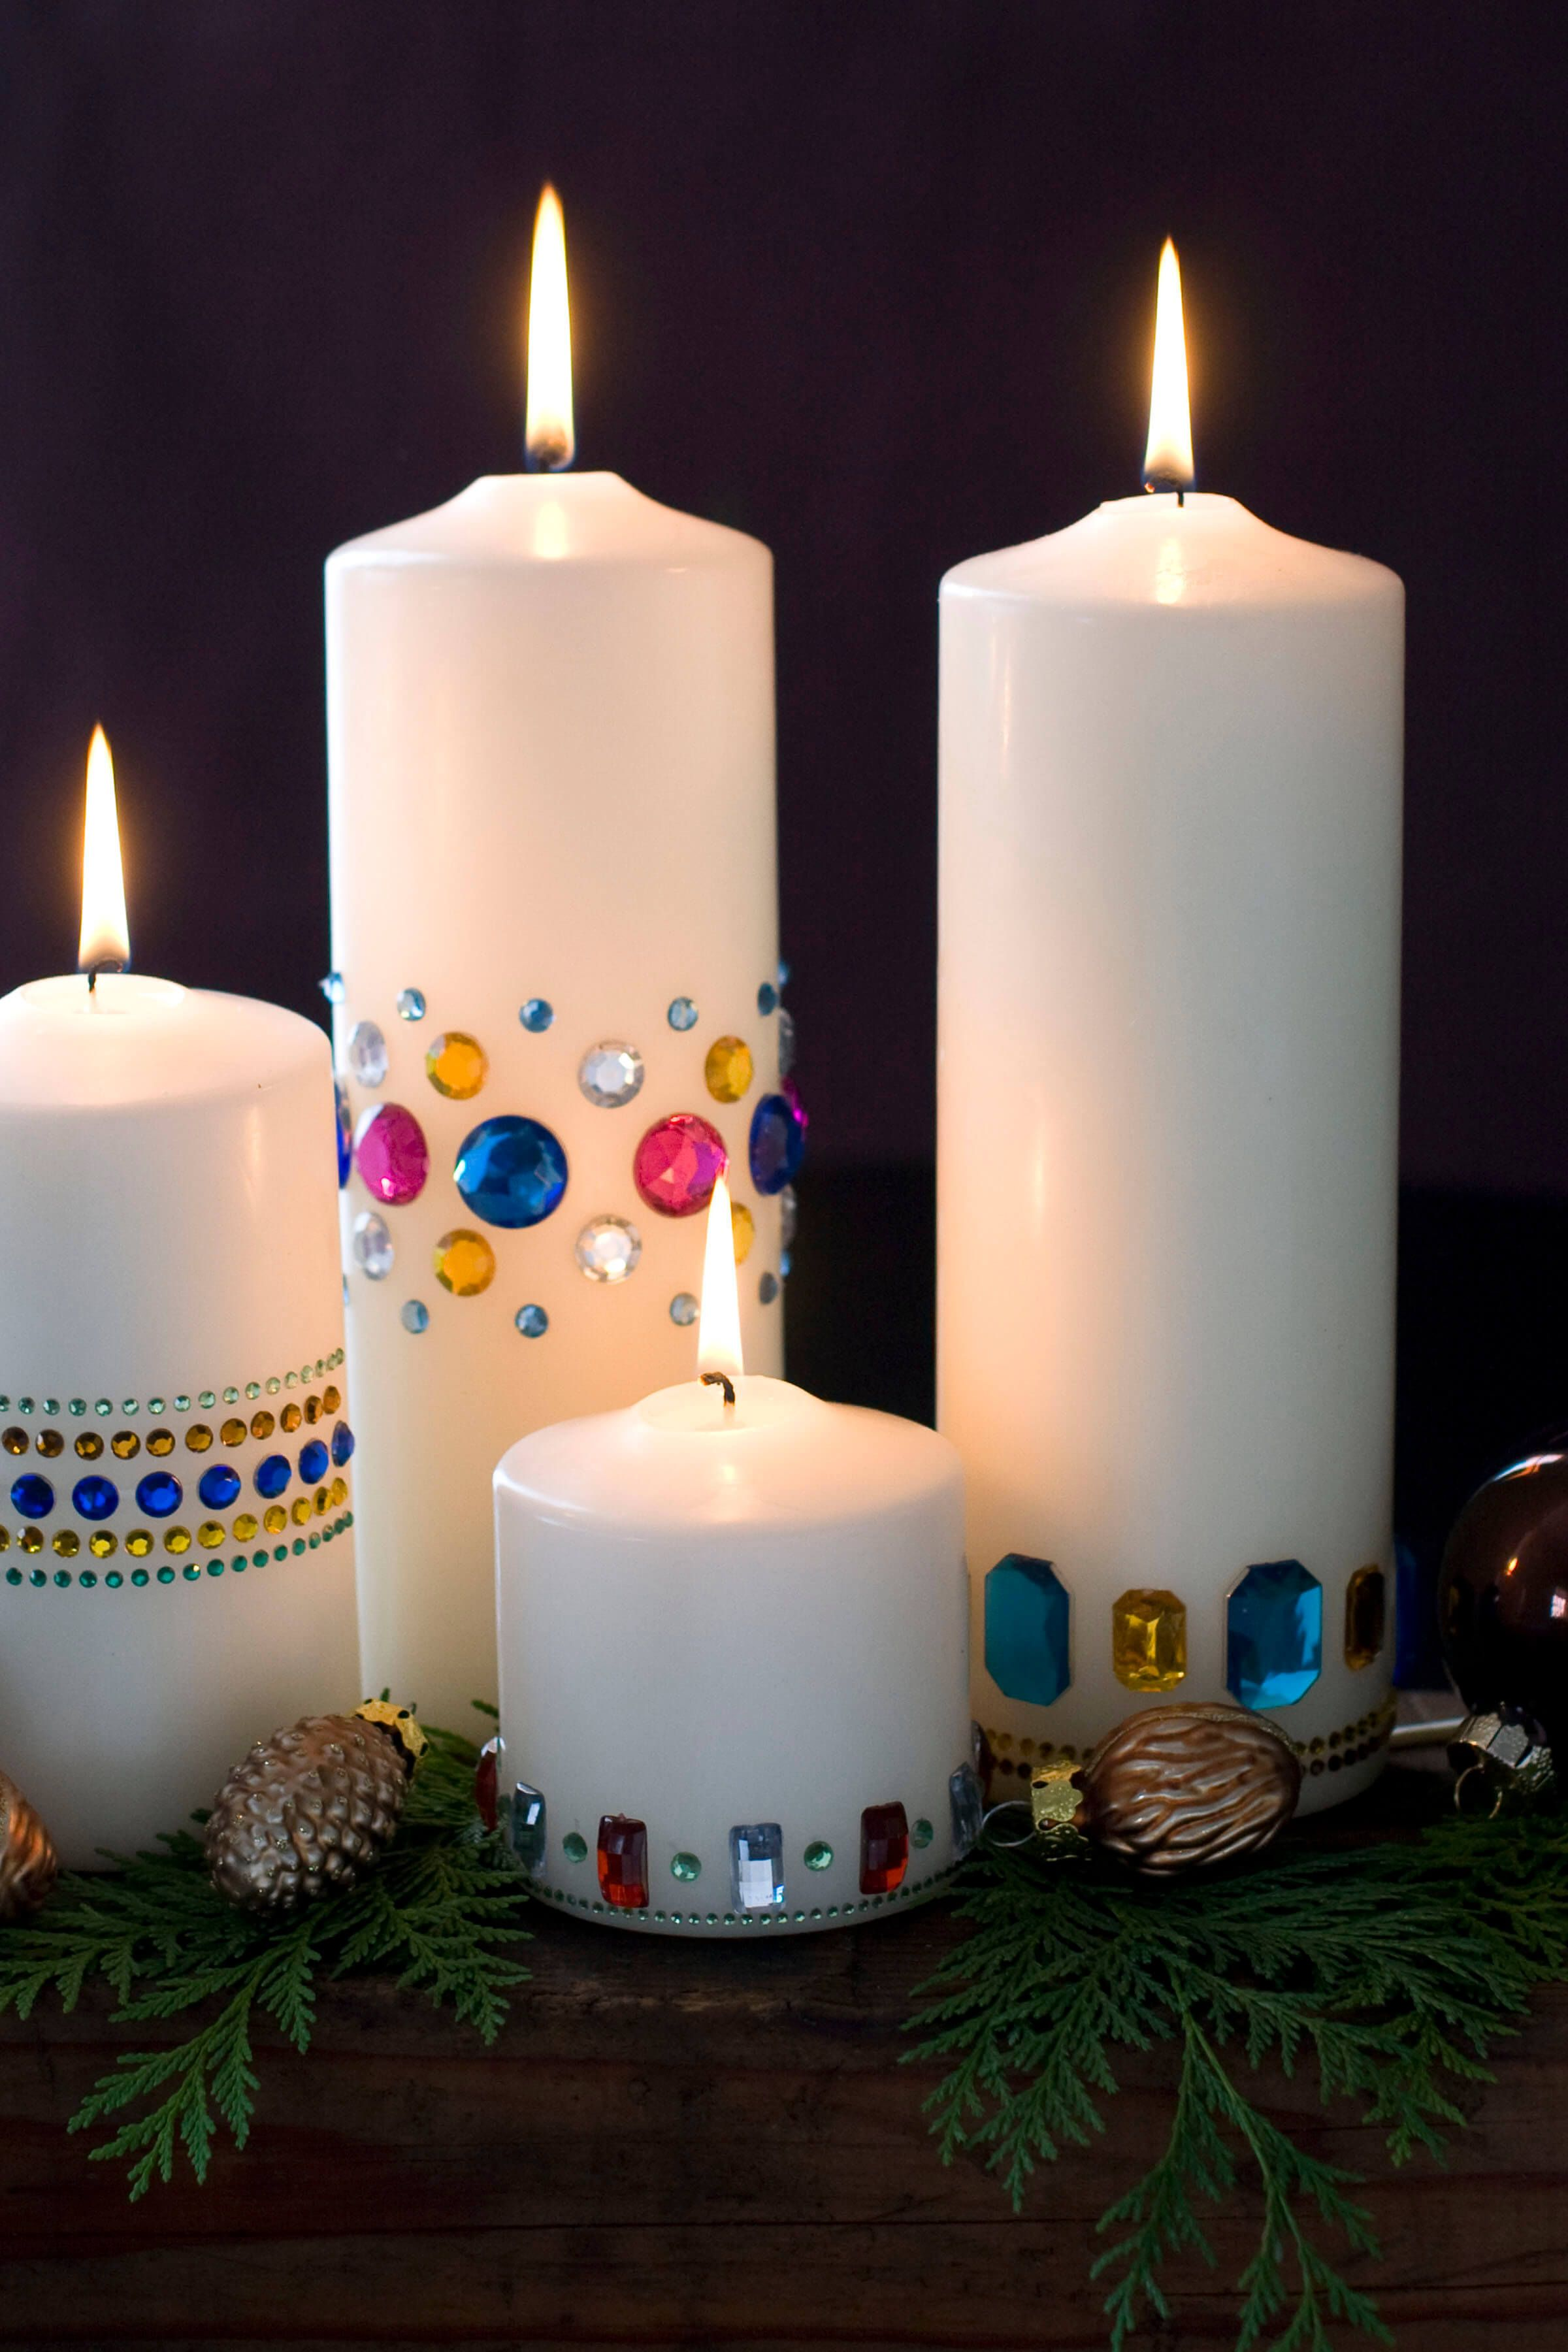 32 Easy And Fun Ideas On How To Decorate A Candle Diy Candle Decor Candle Decor Ramadan Decorations